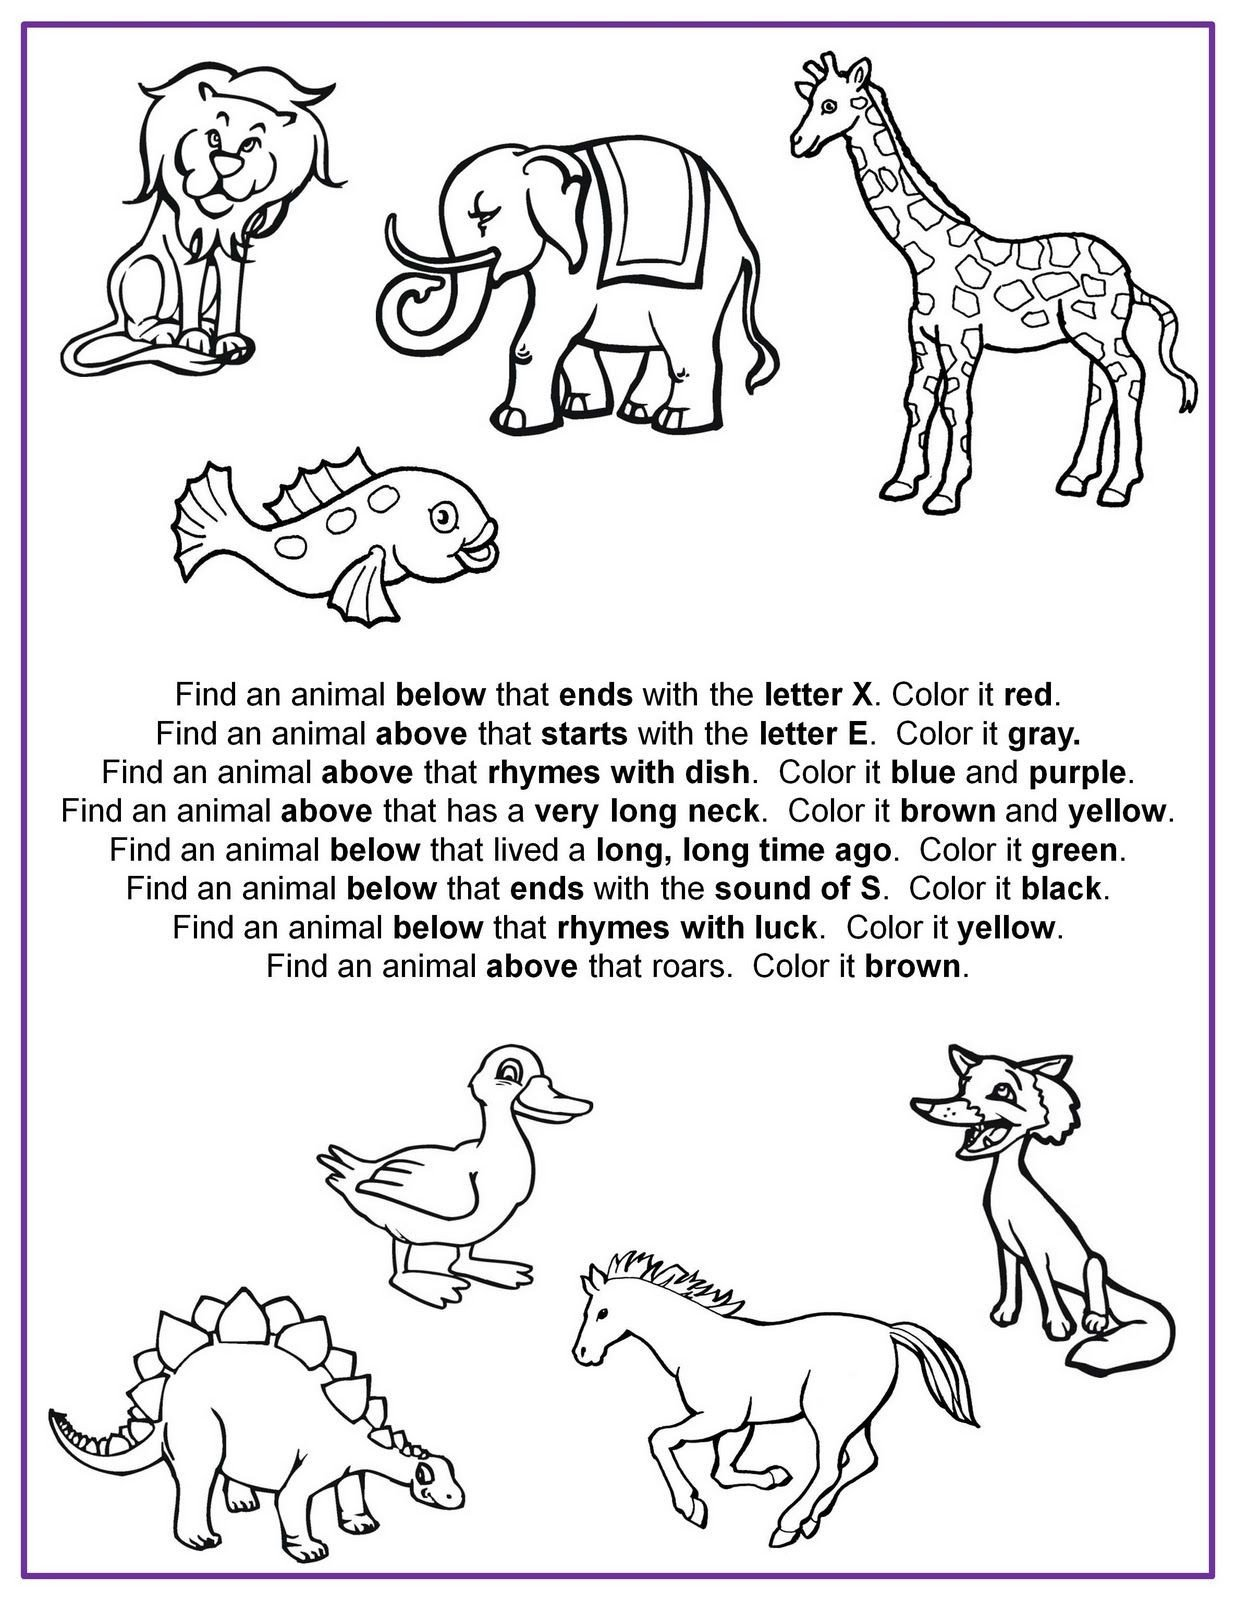 Follow Directions Worksheet Kindergarten Nonna and Me Find It Color It Following Directions